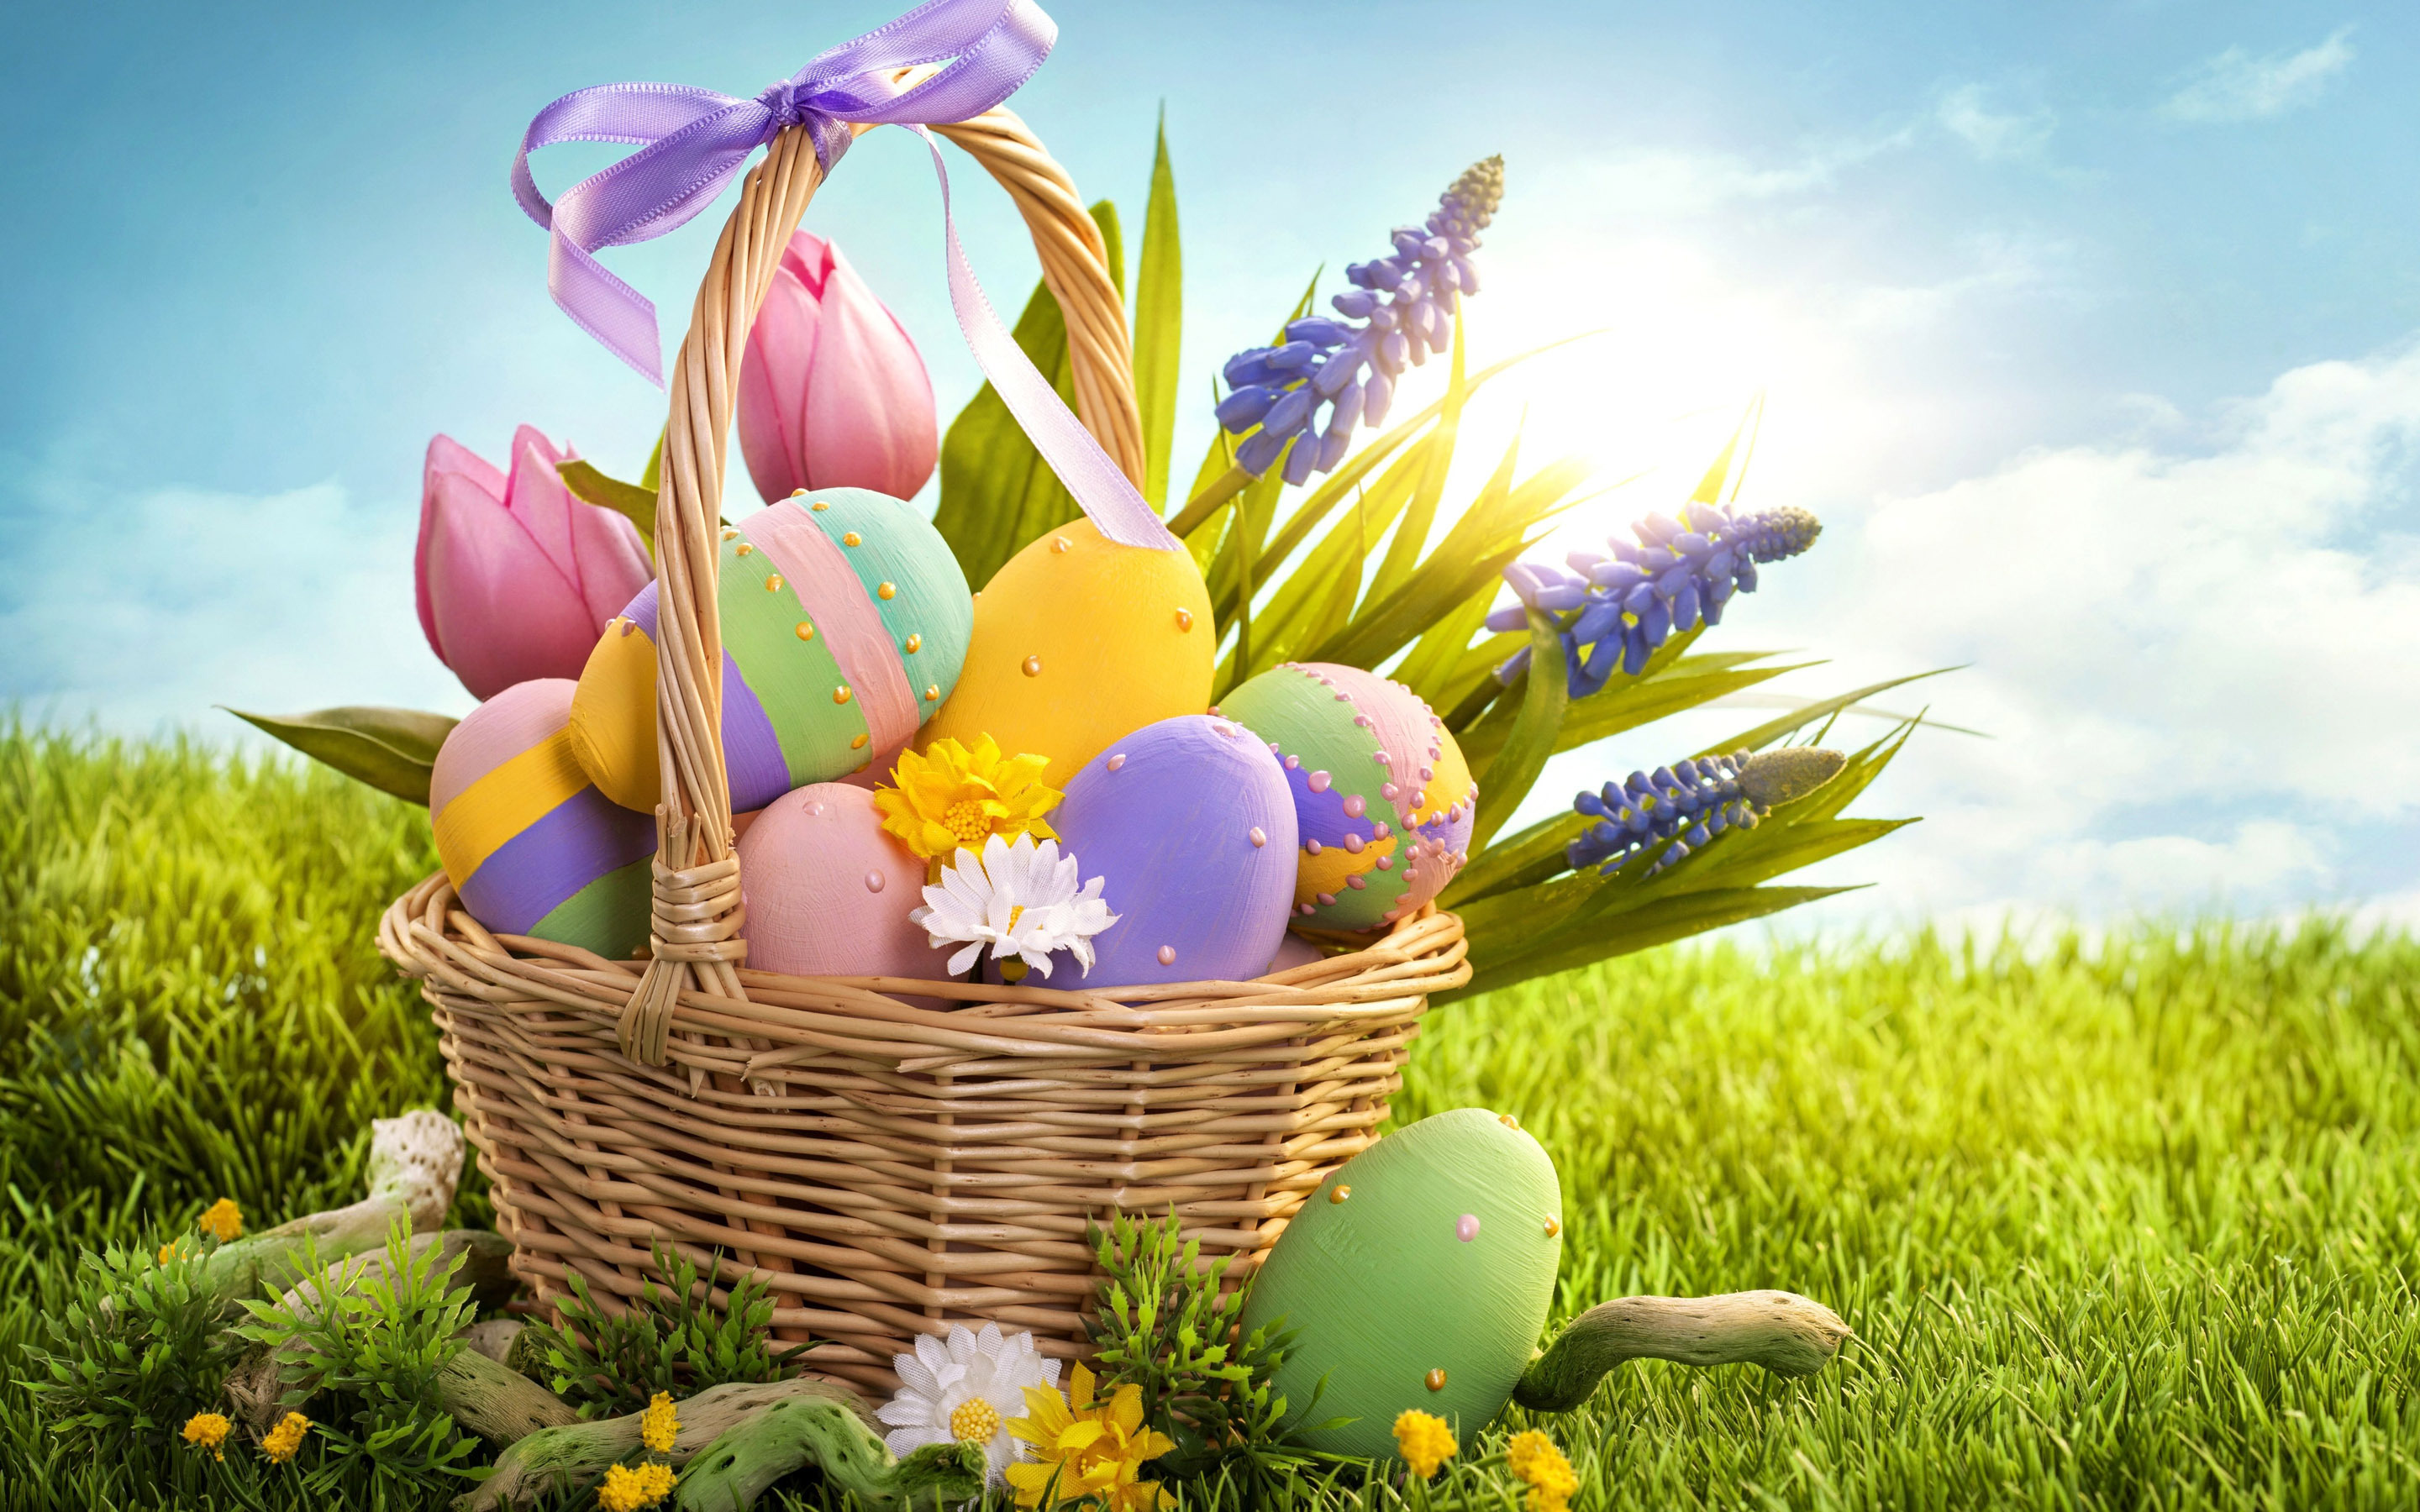 easter-wallpaper-hd-free-desktop